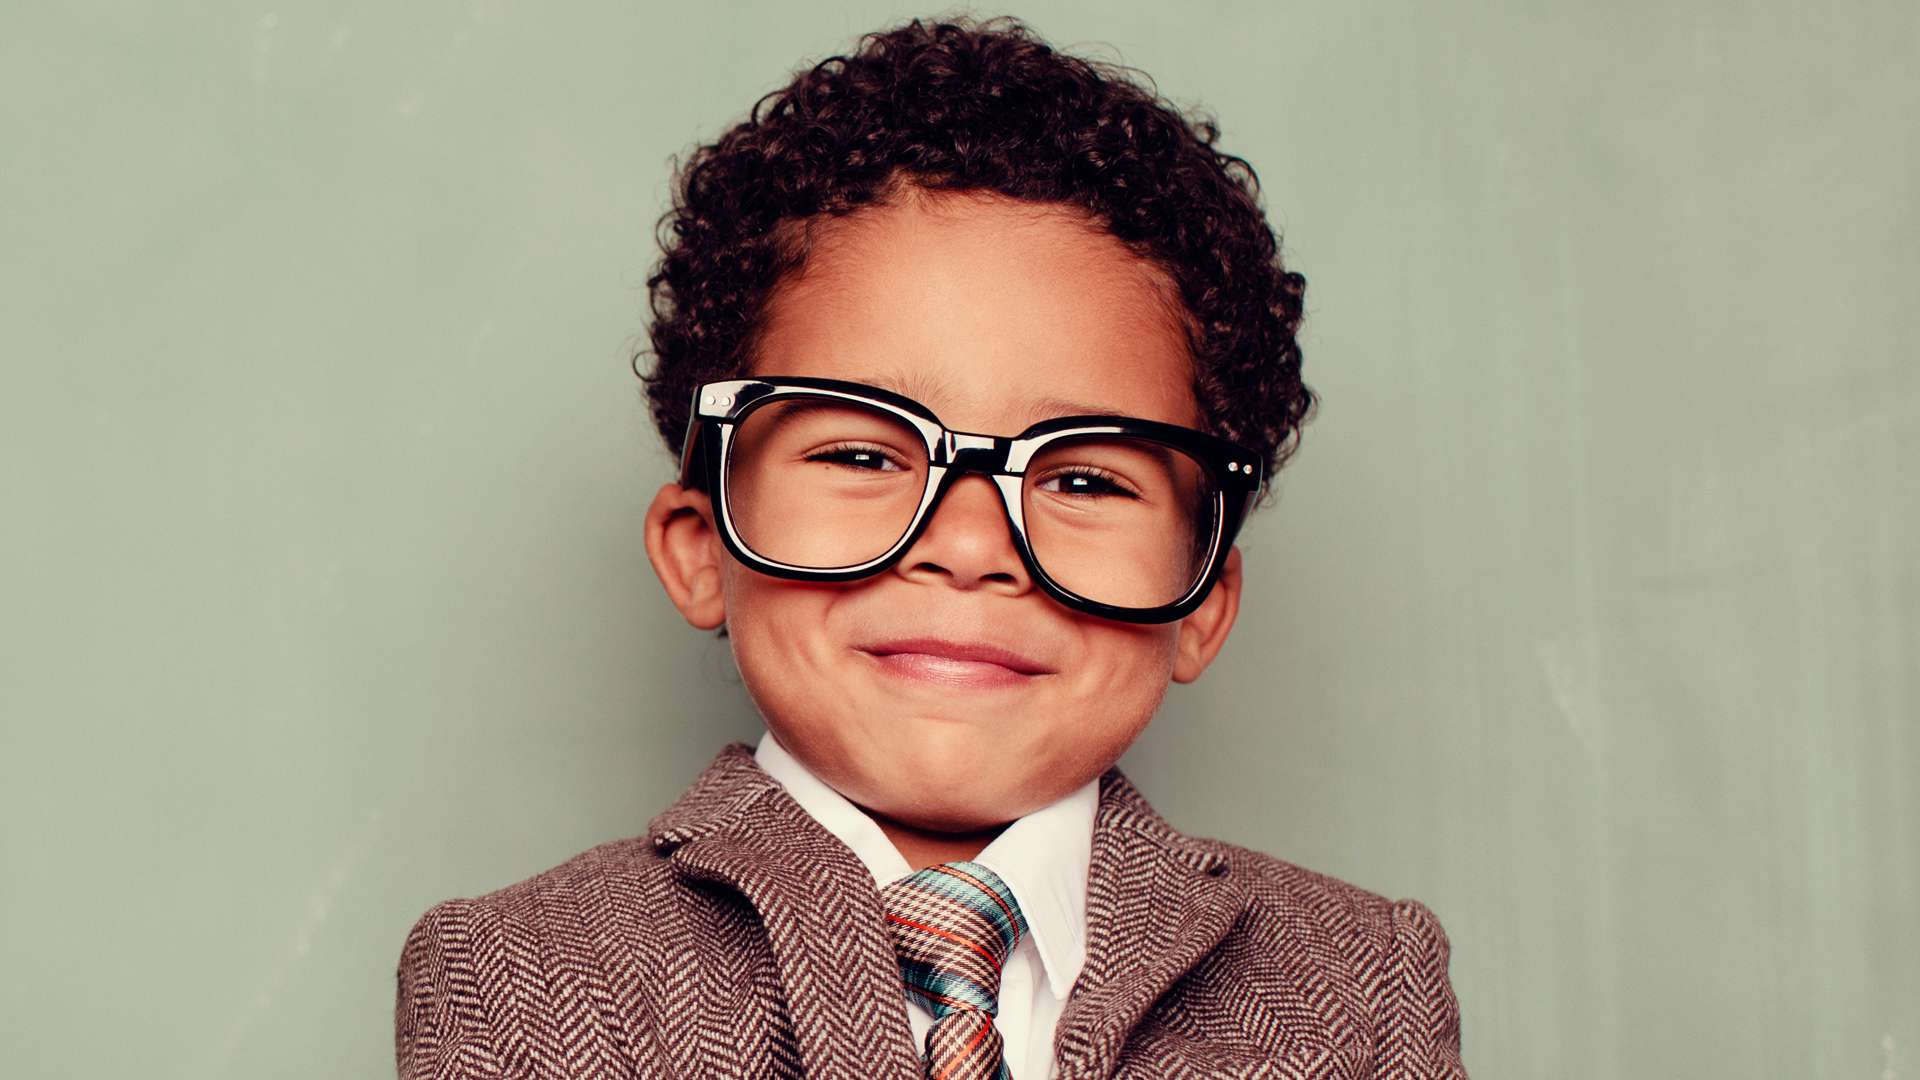 A young boy with glasses and a suit.